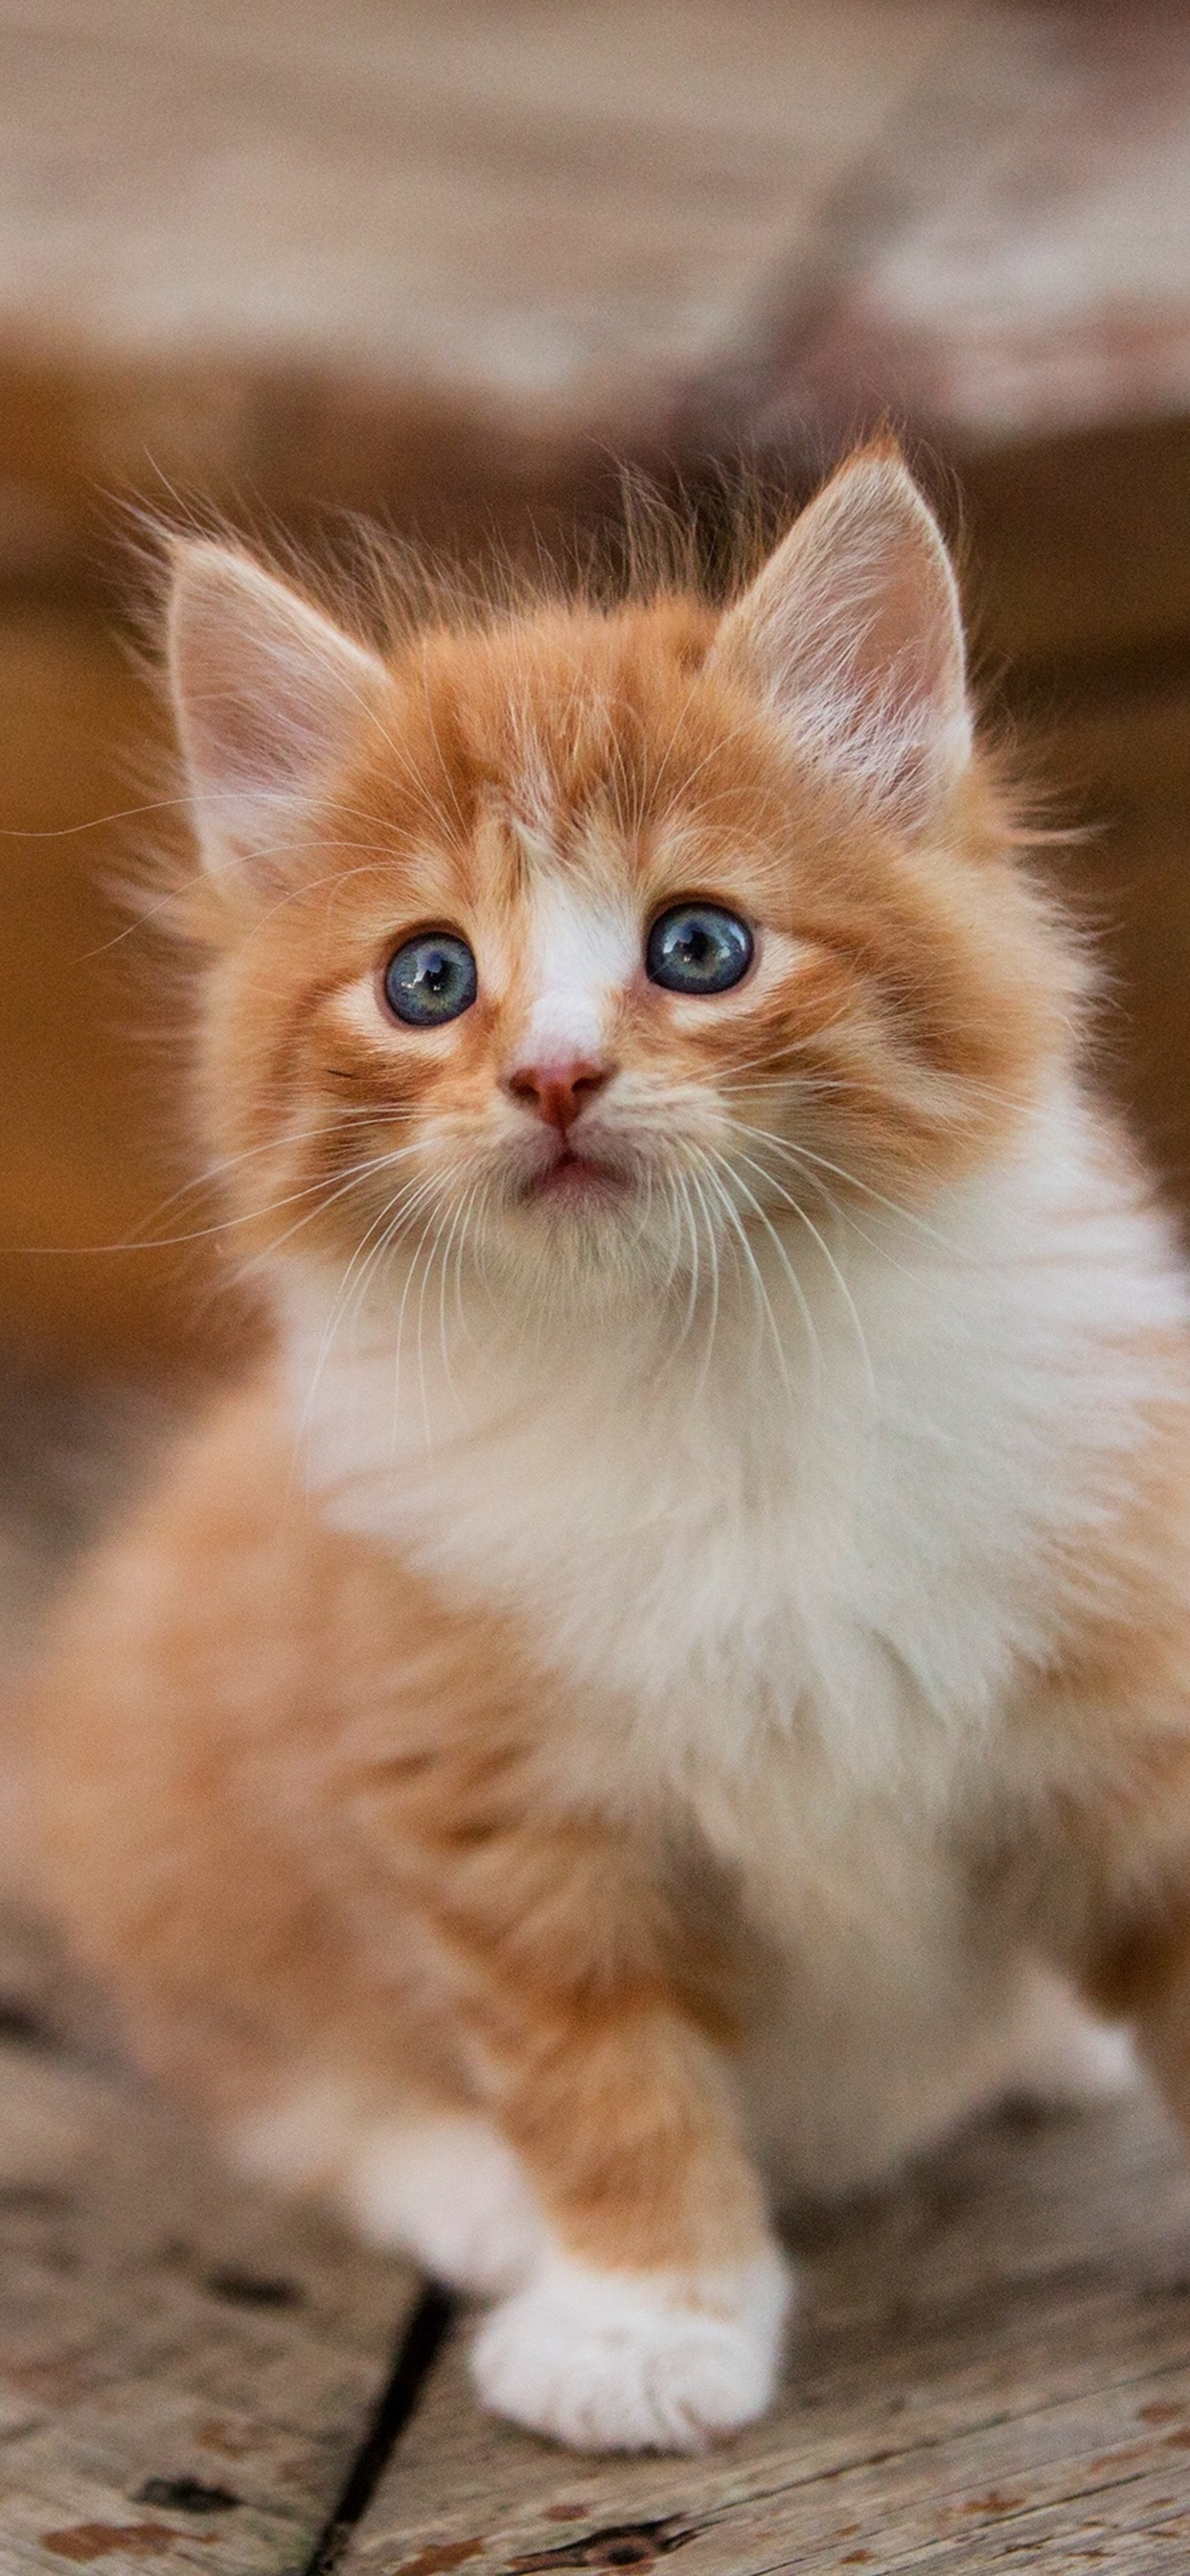 1242x2688 Cute Kitten Iphone Xs Max Hd 4k Wallpapers Images Backgrounds Photos And Pictures